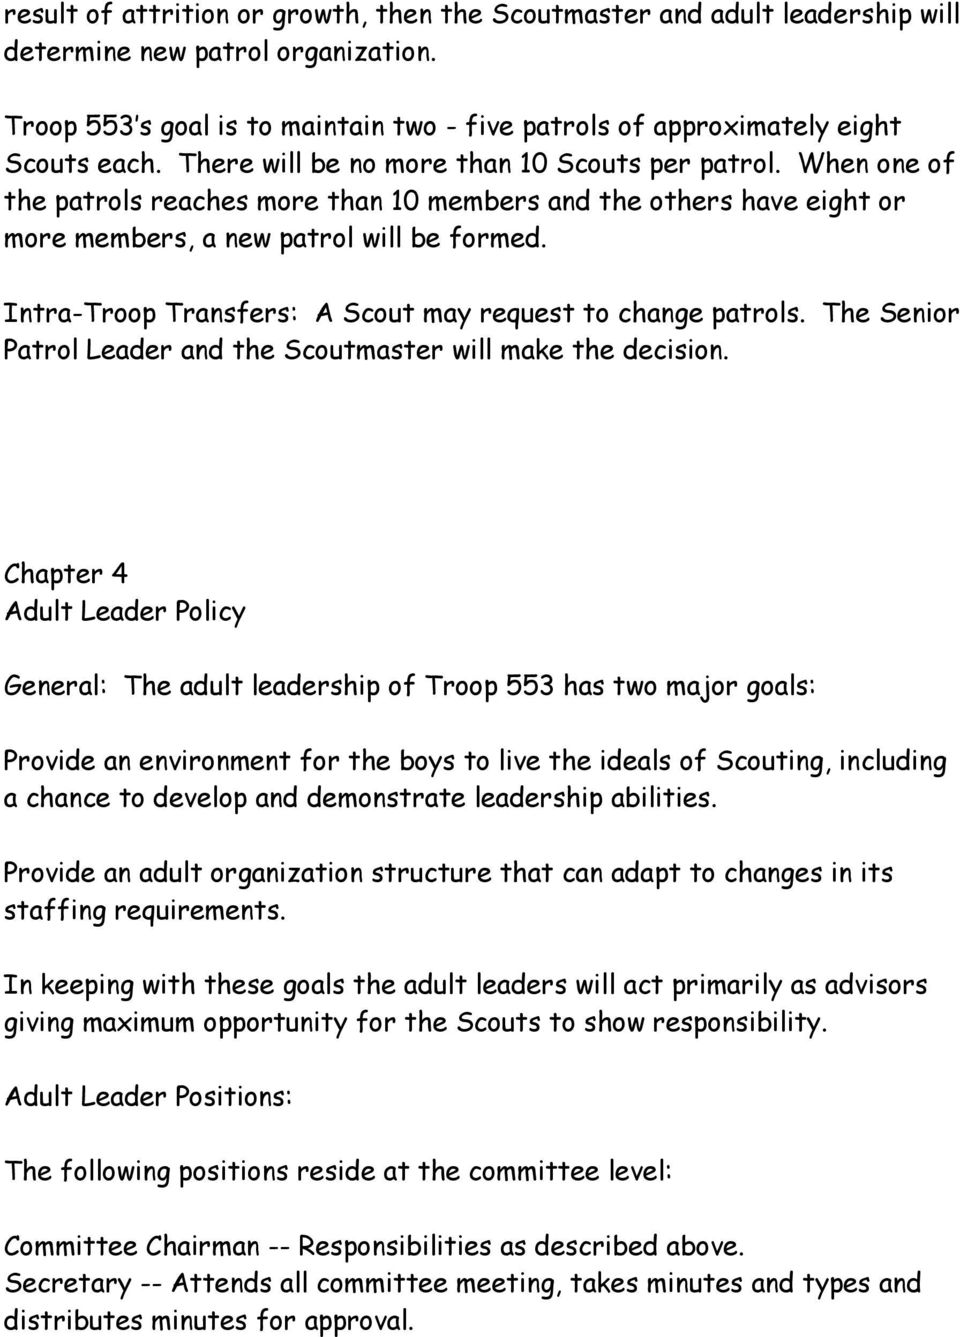 Intra-Troop Transfers: A Scout may request to change patrols. The Senior Patrol Leader and the Scoutmaster will make the decision.